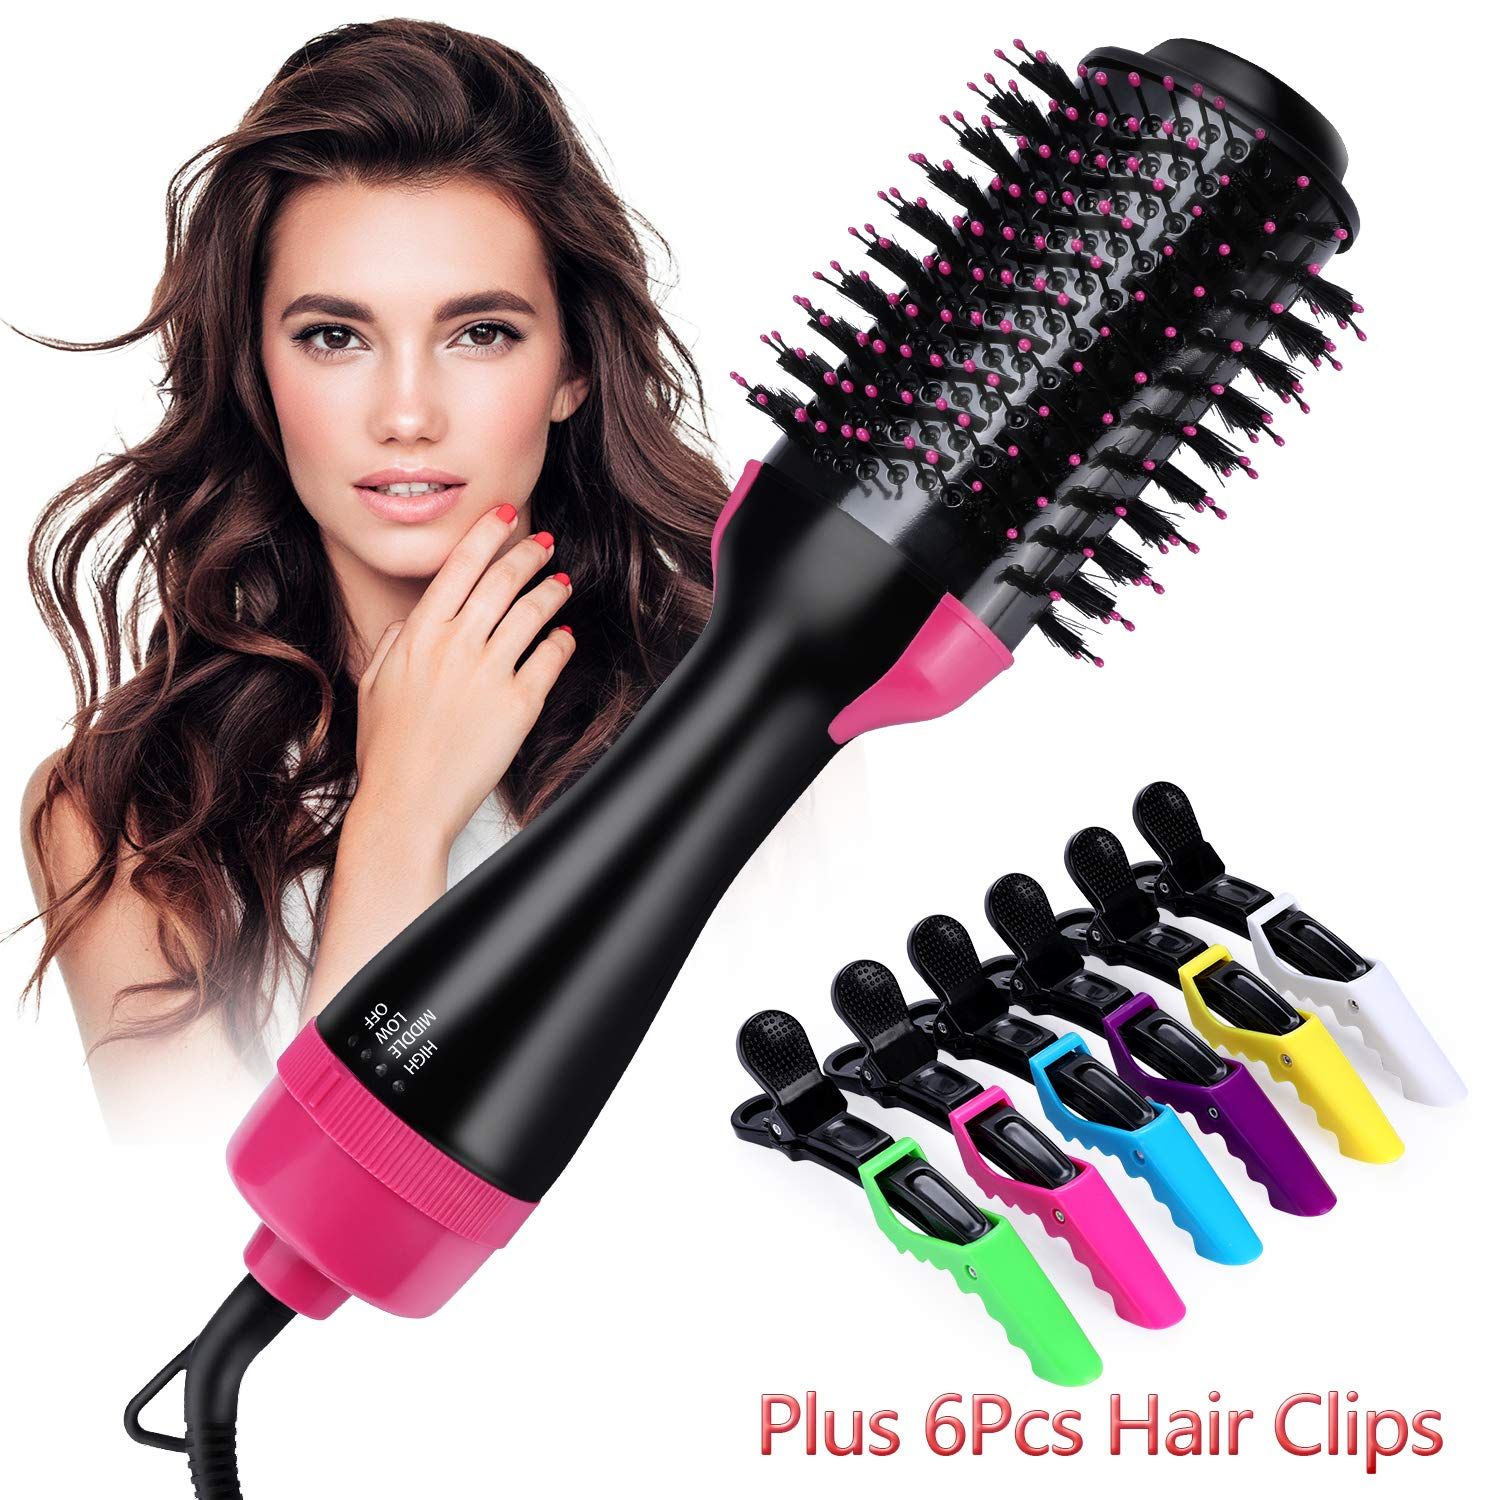 Hot Air Brush,One Step Hair Dryer & Volumizer Multi-functional 3-in-1 Salon Negative Ion Hair Straightener & Curly Hair Comb include 6pcs Plastic Alligator Hair Clips.